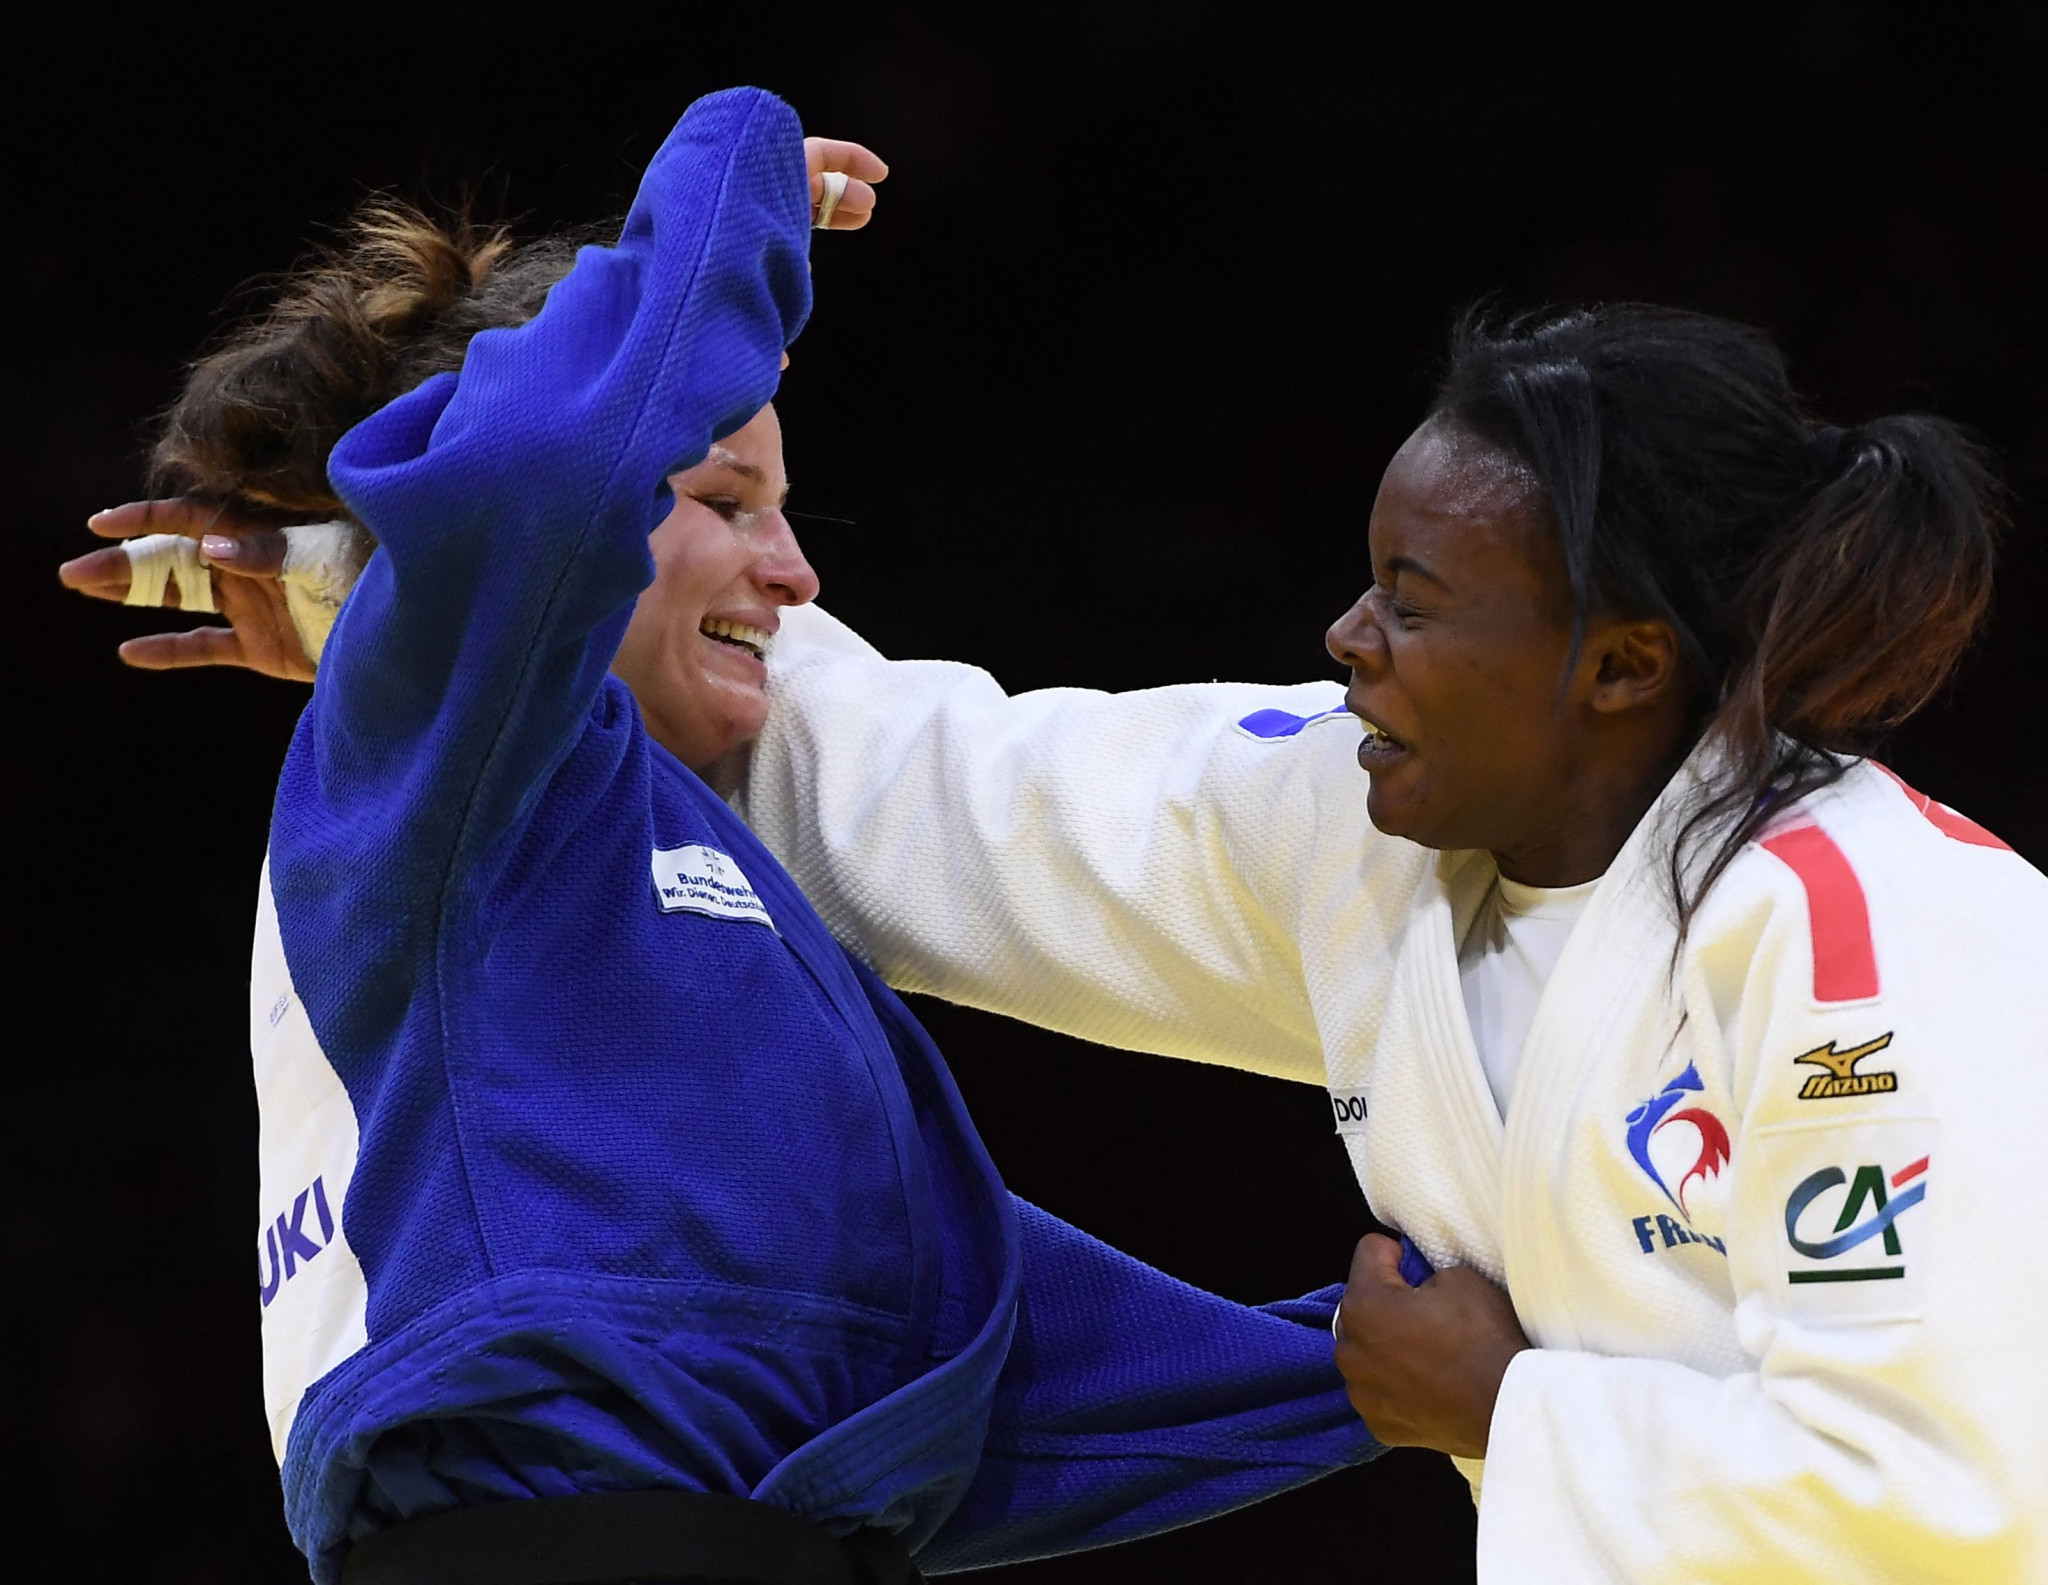 Anna Maria Wagner defeated Madeleine Malonga in the women's under-78kg final ©Getty Images